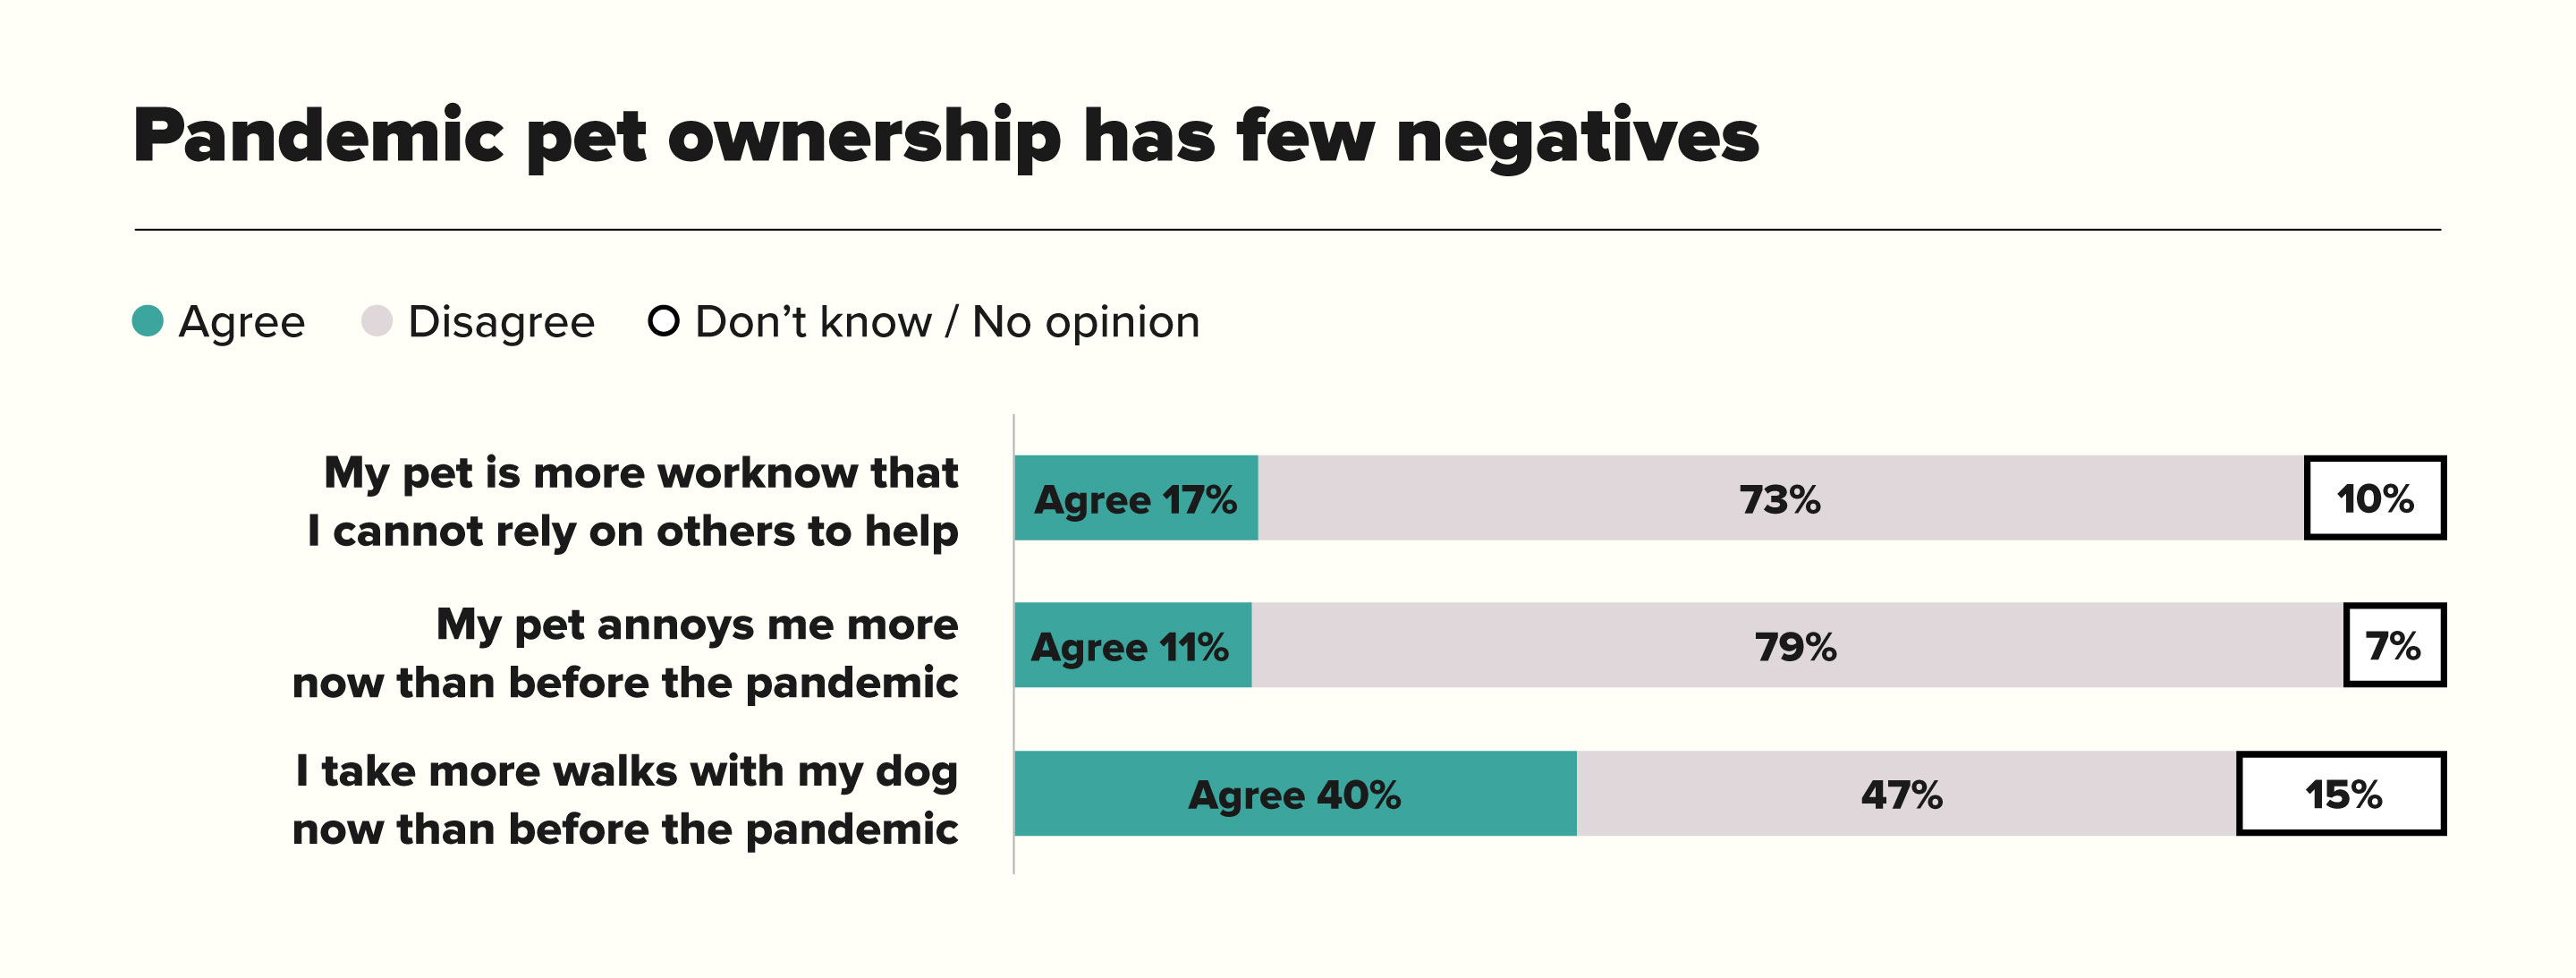 Pandemic Pet Ownership Has Few Negatives Chart